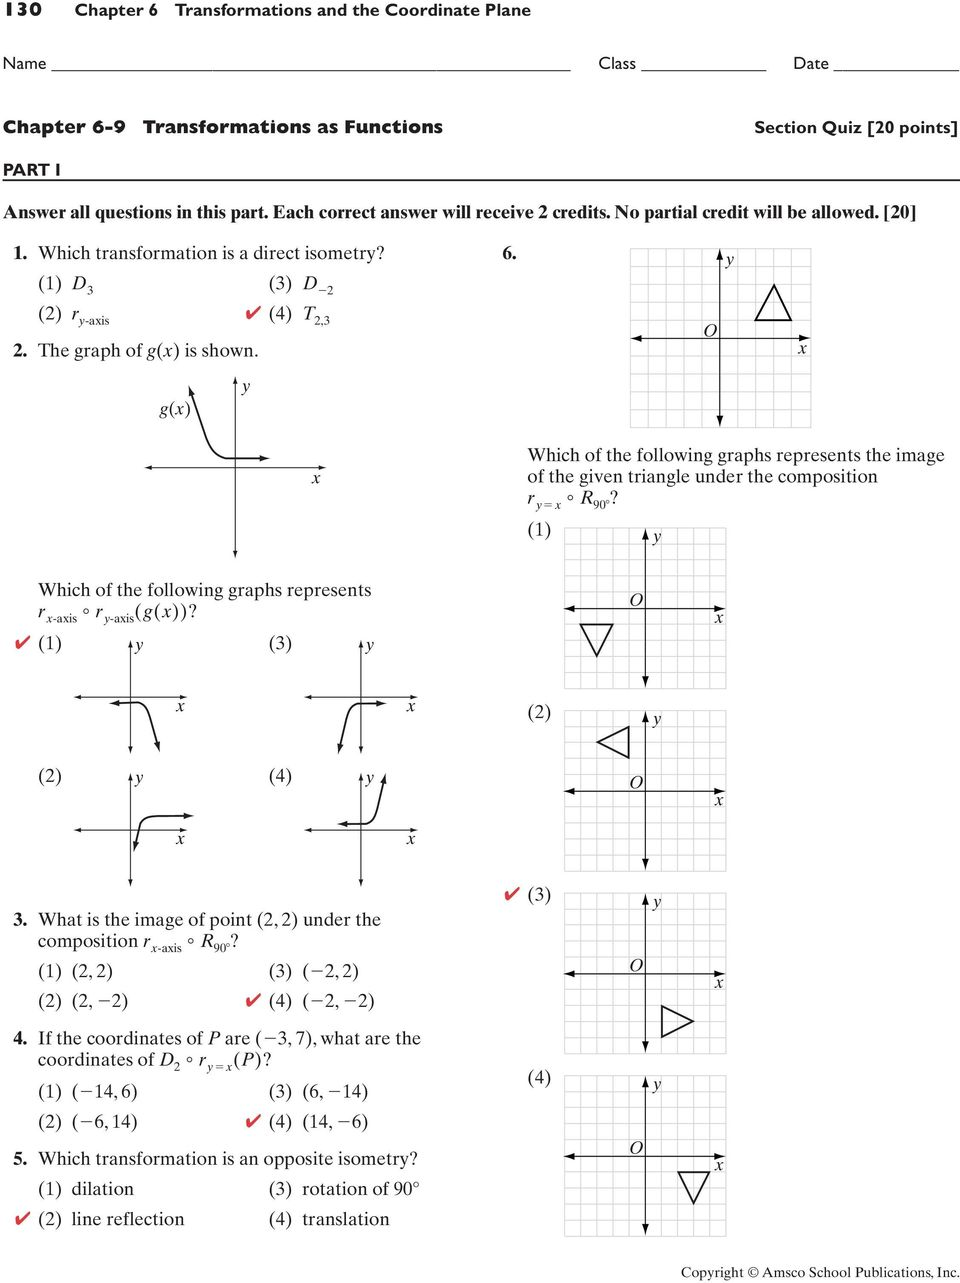 116 Chapter 6 Transformations And The Coordinate Plane PDF